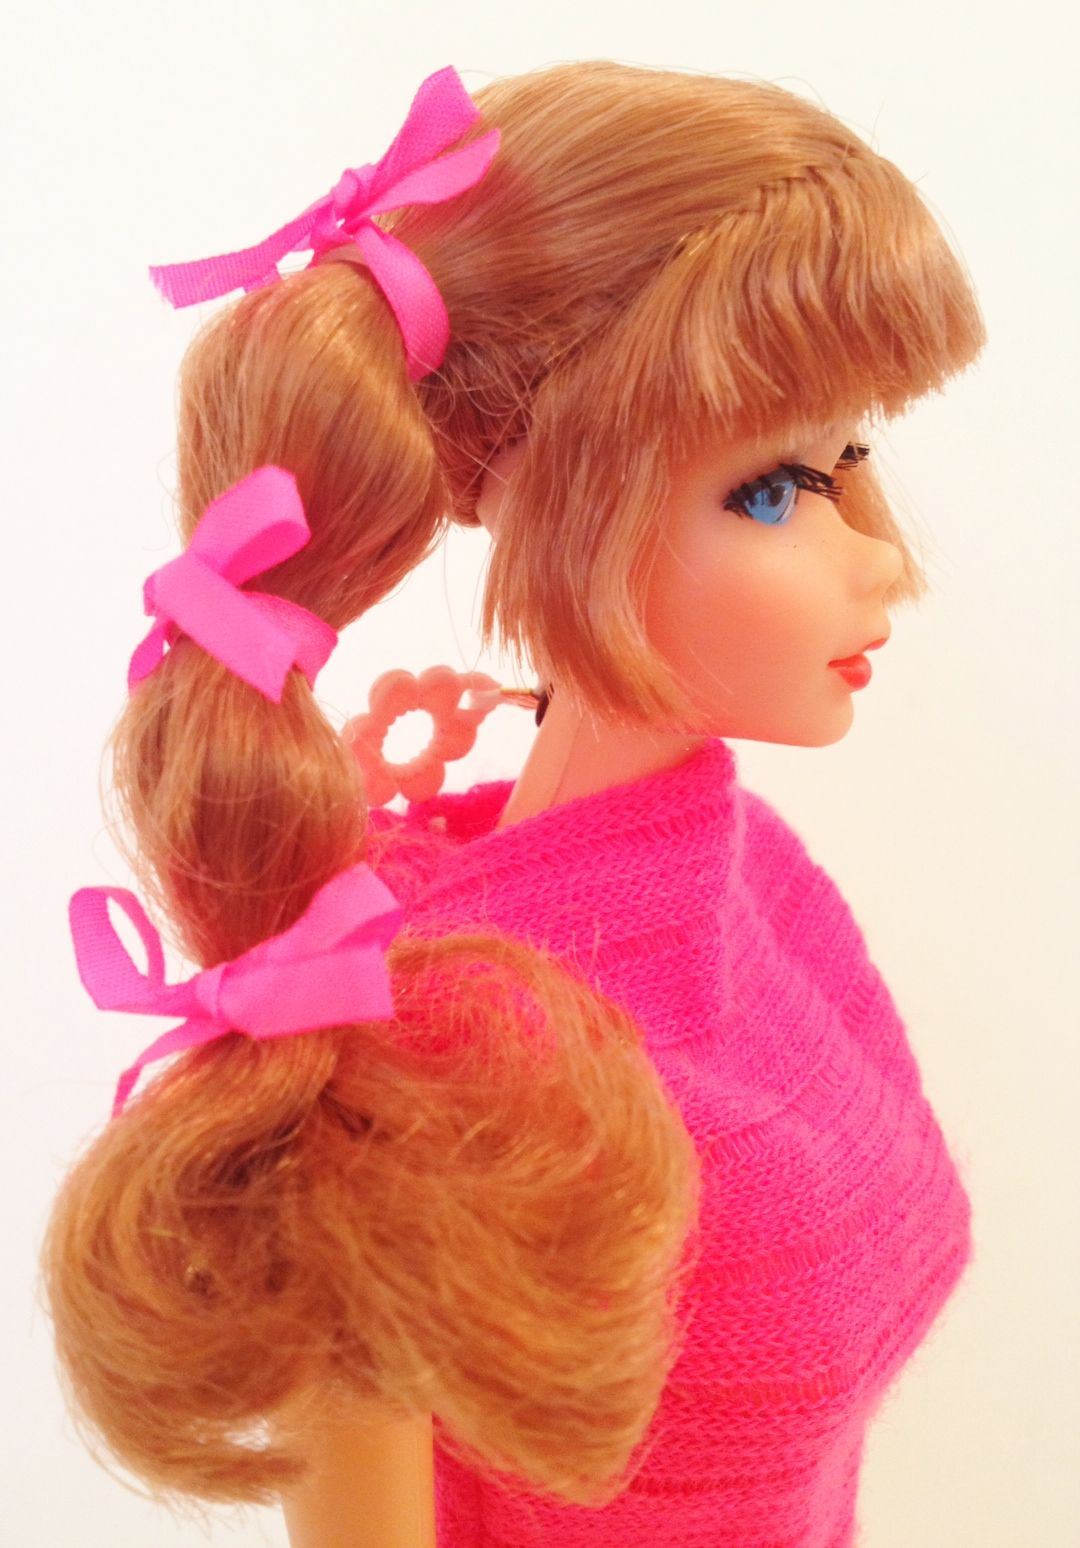 Got this talking Barbie for Christmas when I was 6 years